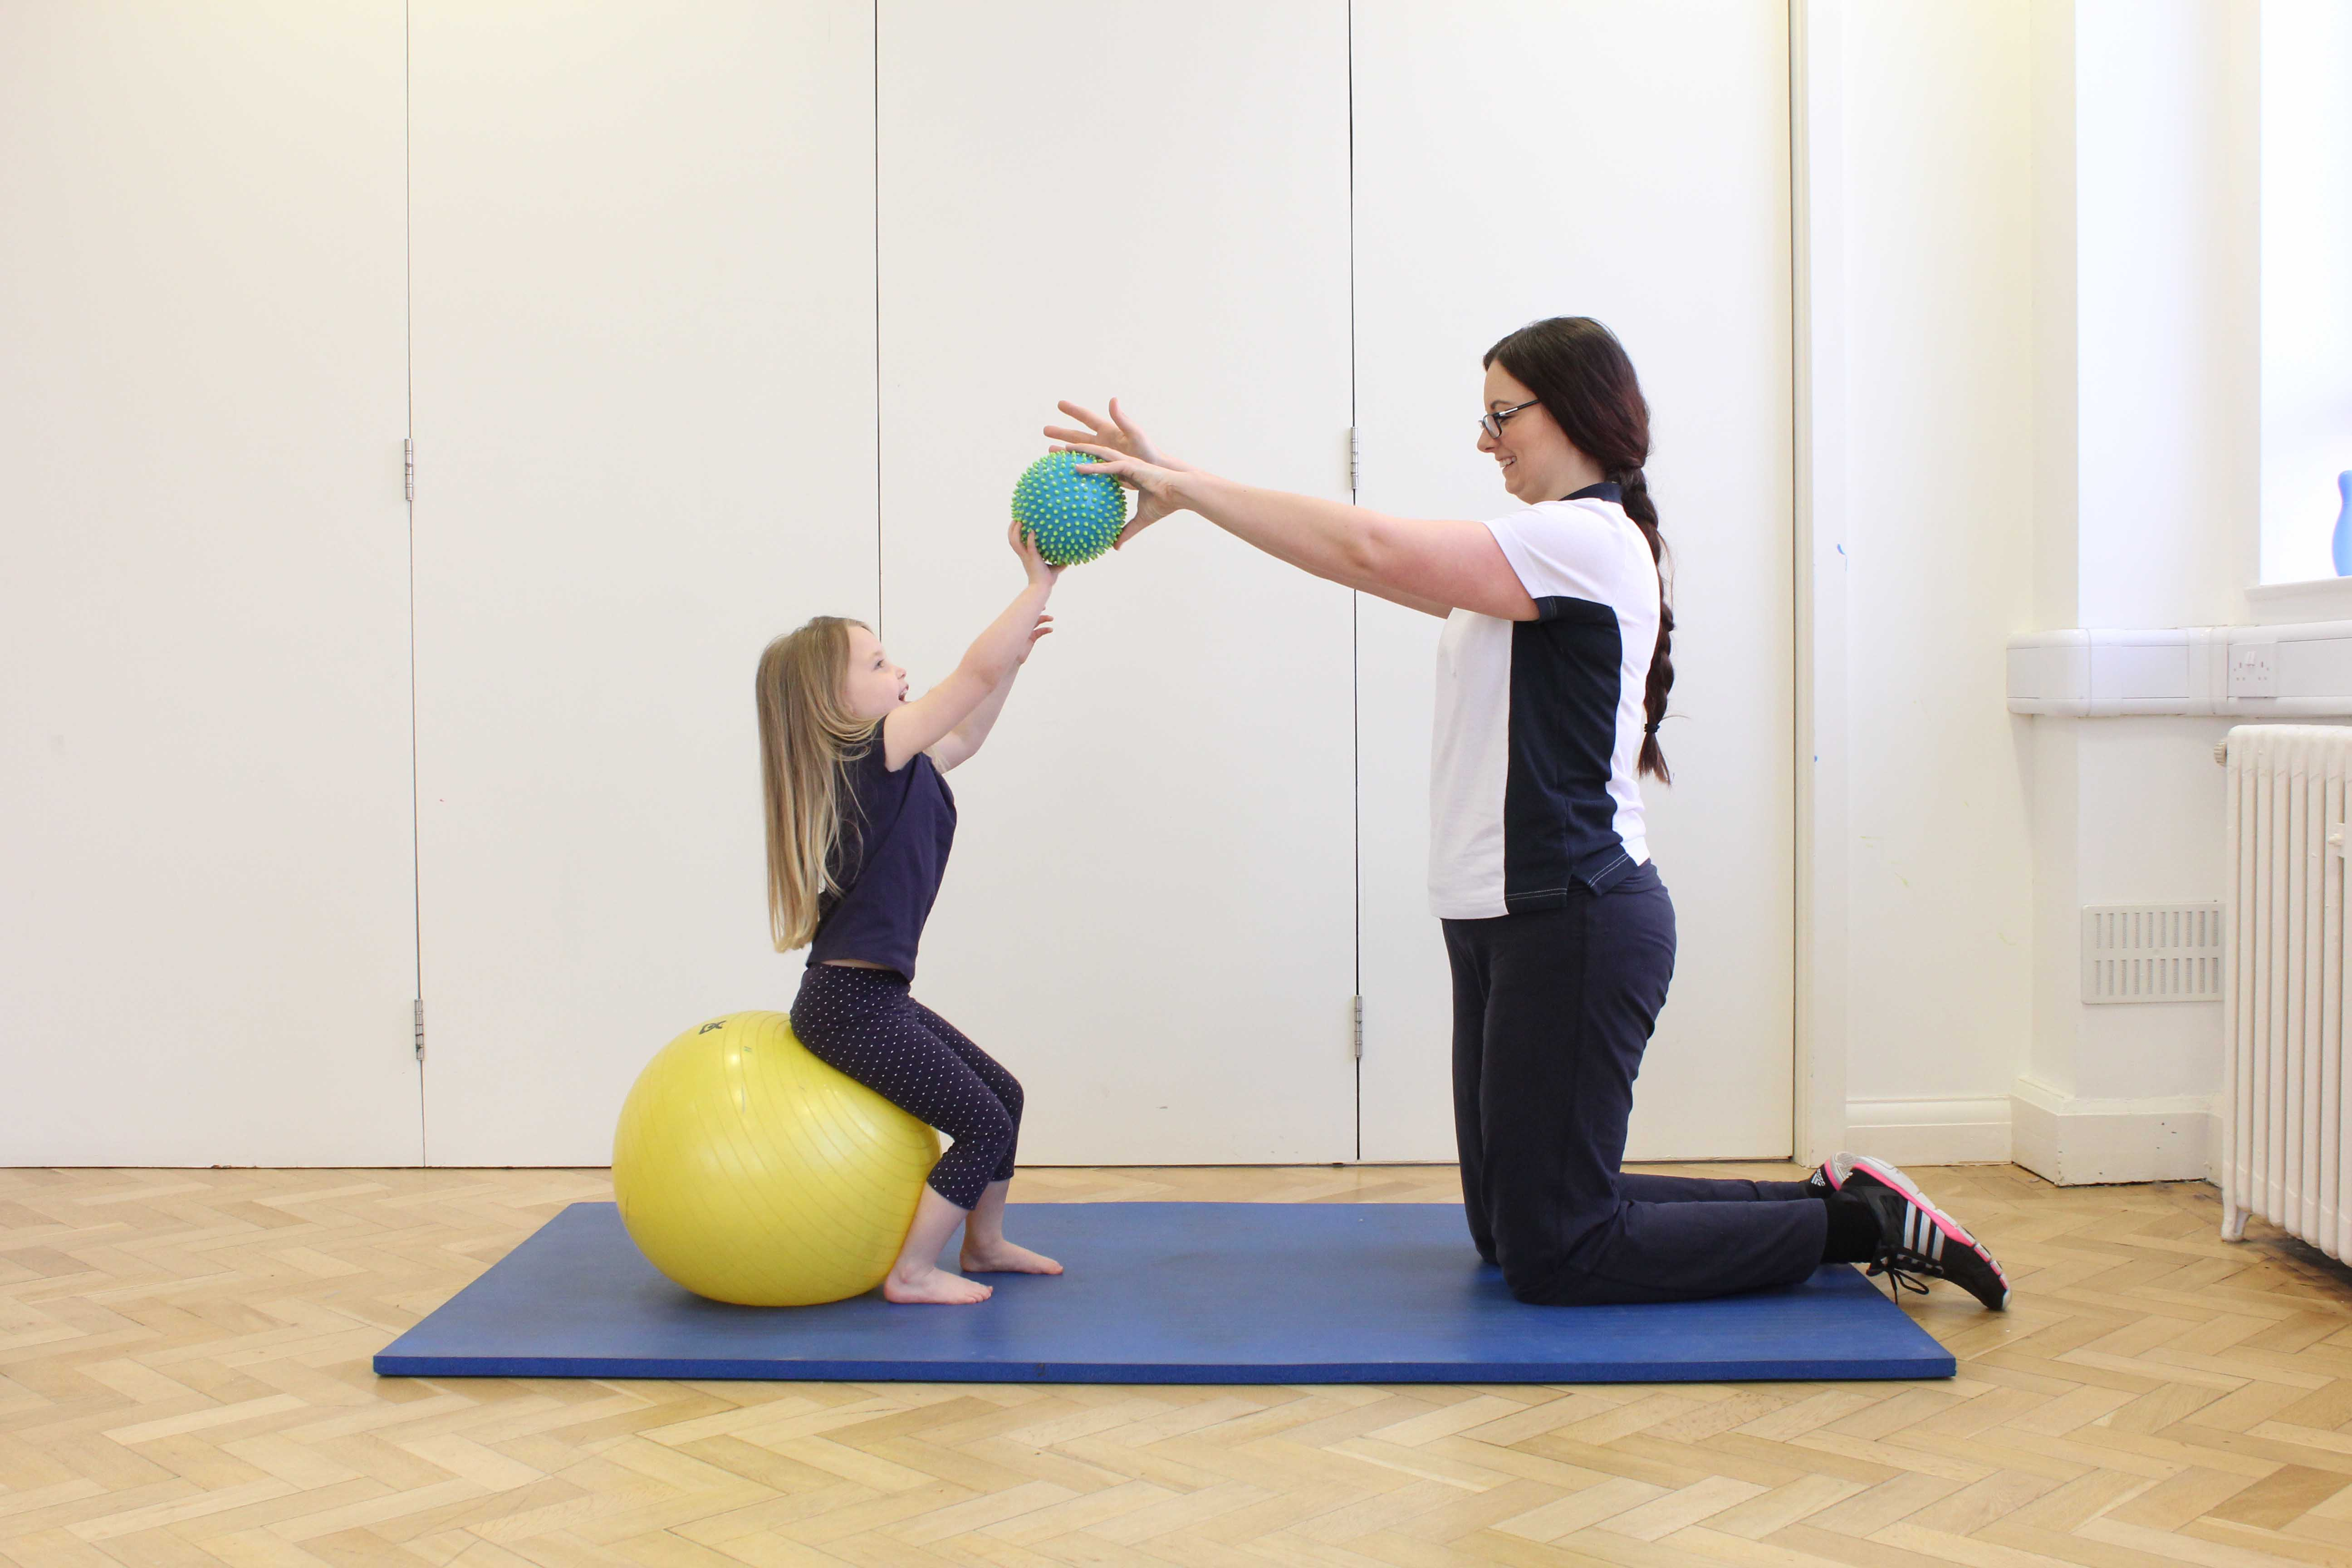 Core stability, balance and co-ordination exercises conducted by a neurological physiotherapist